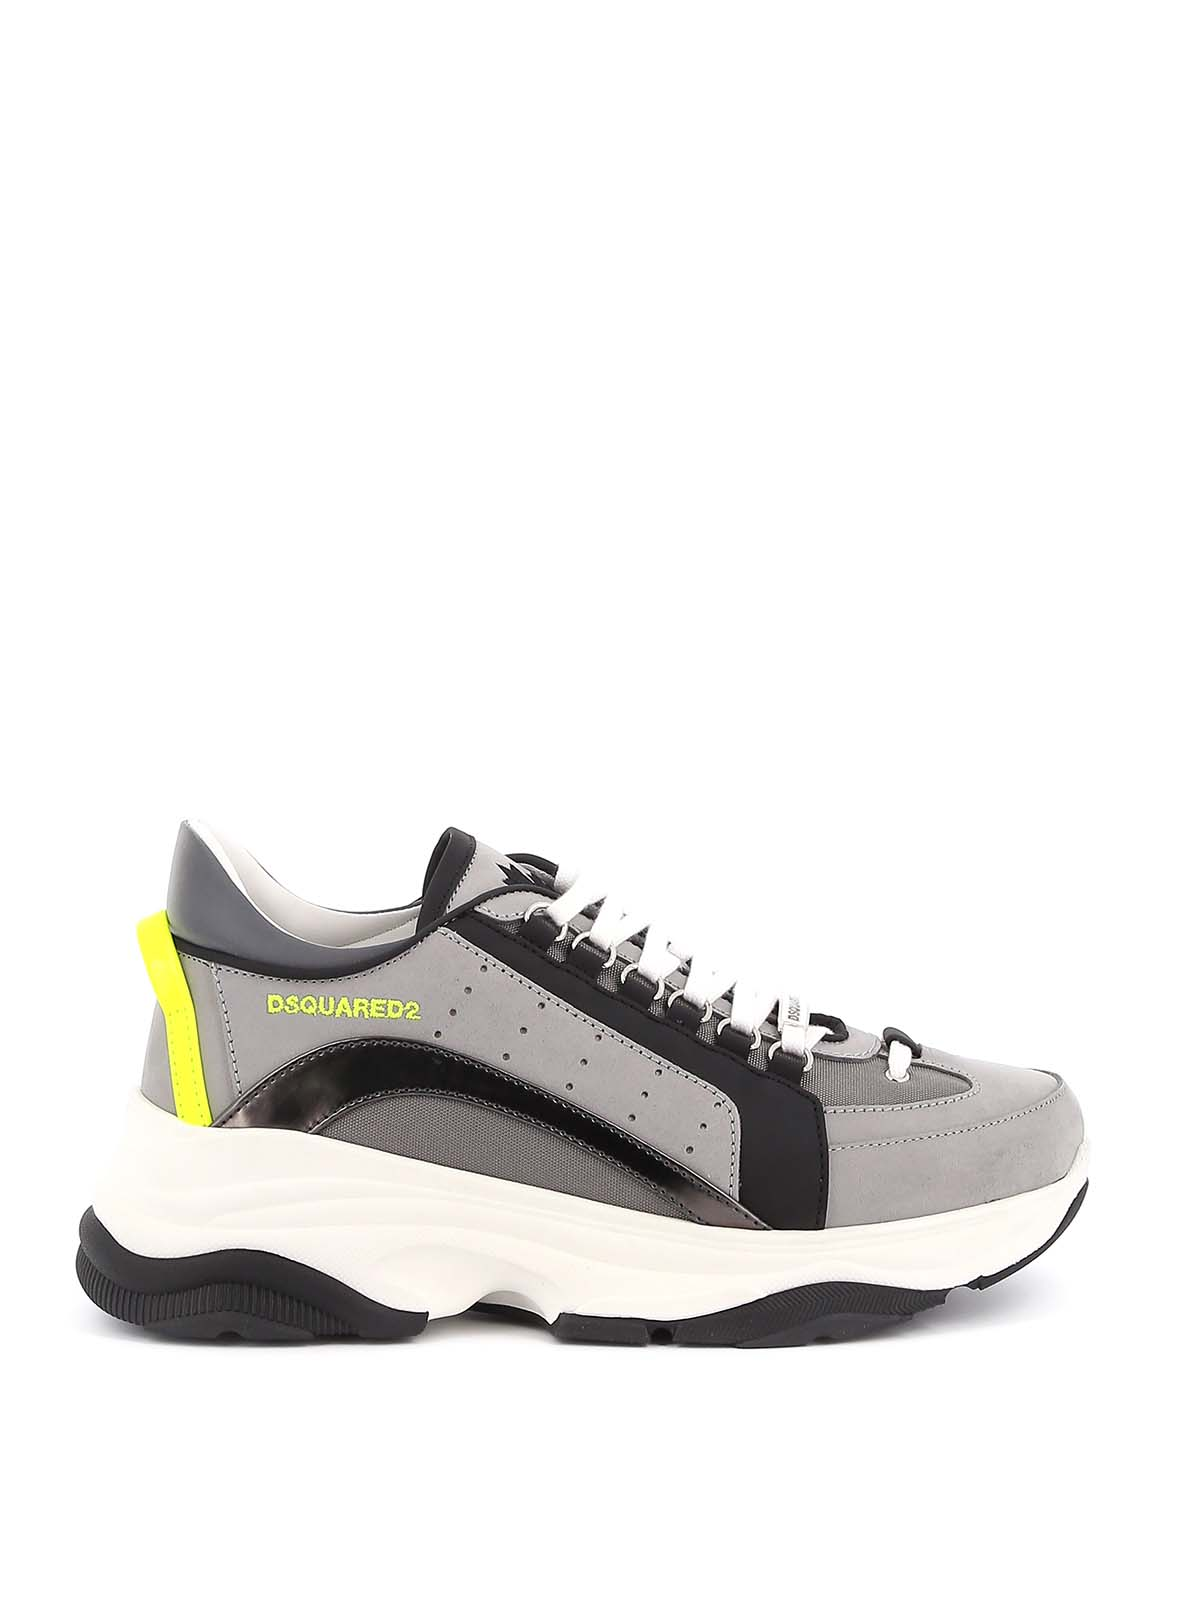 Dsquared2 - Bumpy 551 grey sneakers